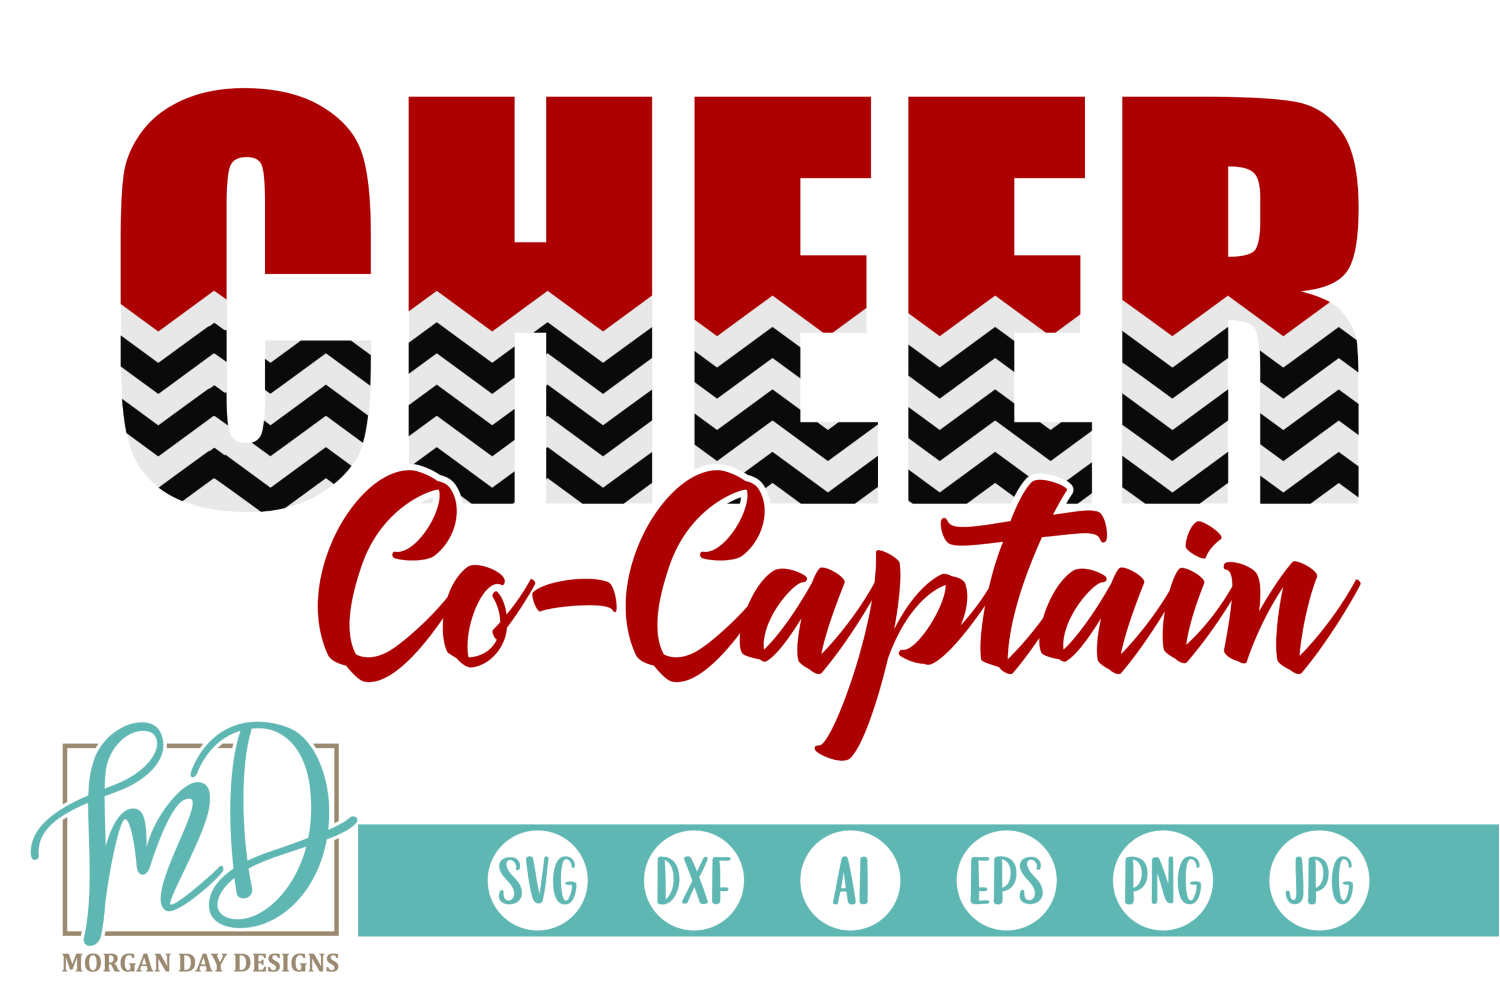 Download Free Cheer Captain Graphic By Morgan Day Designs Creative Fabrica SVG Cut Files